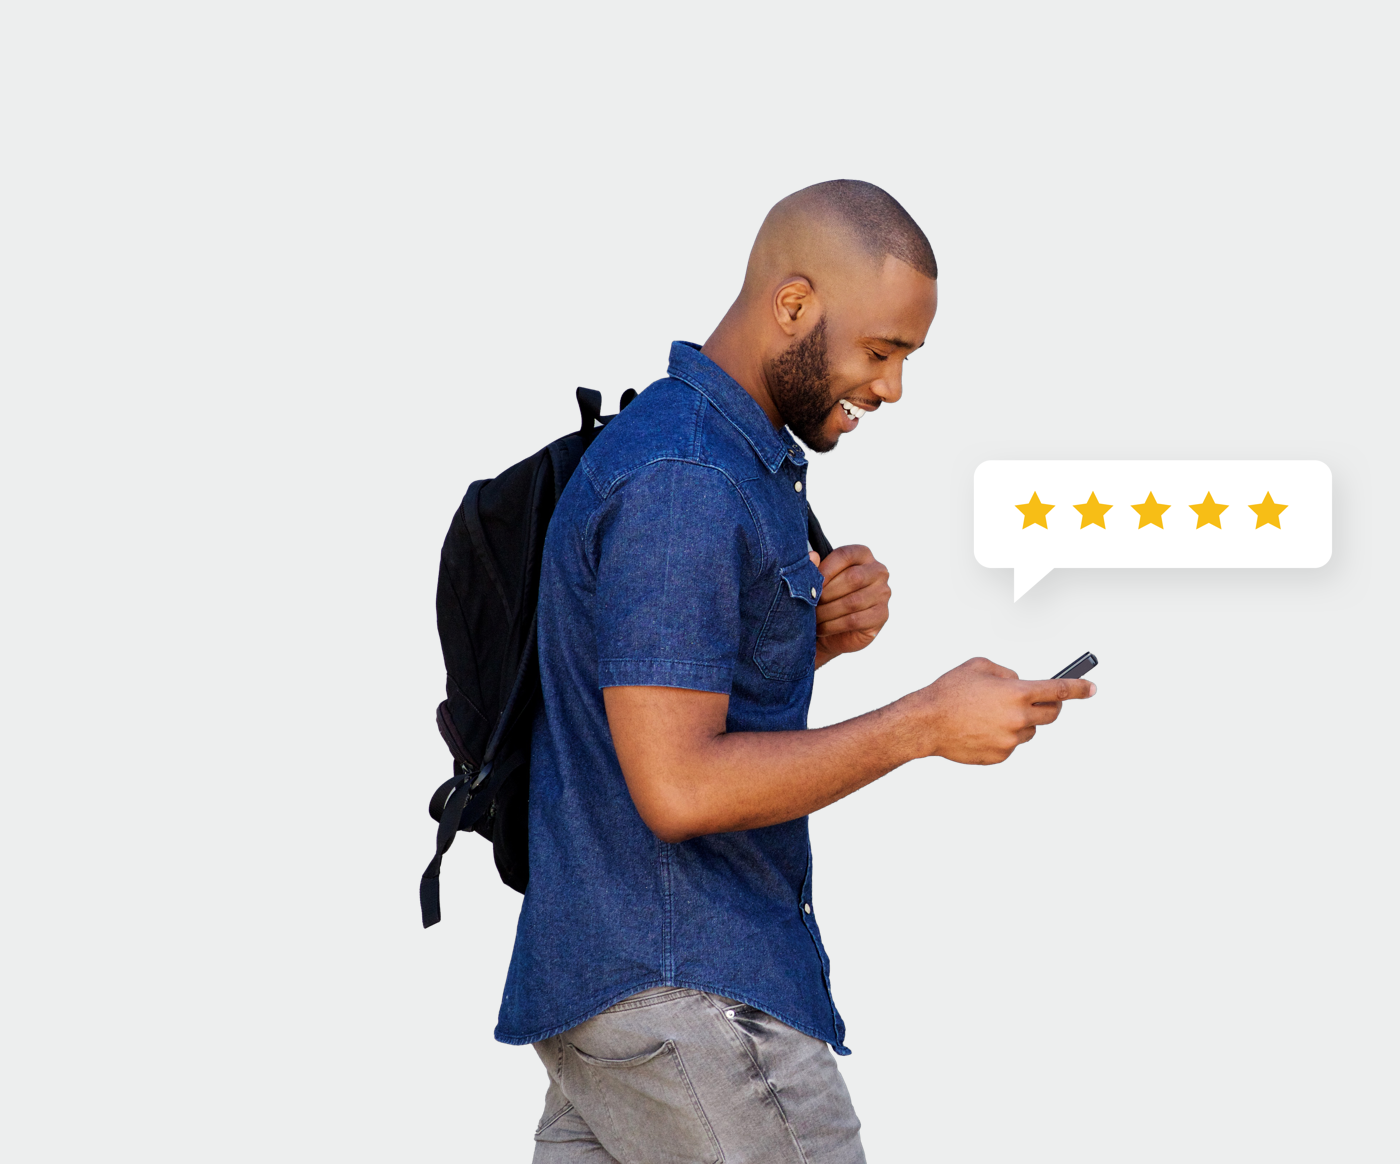 Man is rating 5 stars on his phone